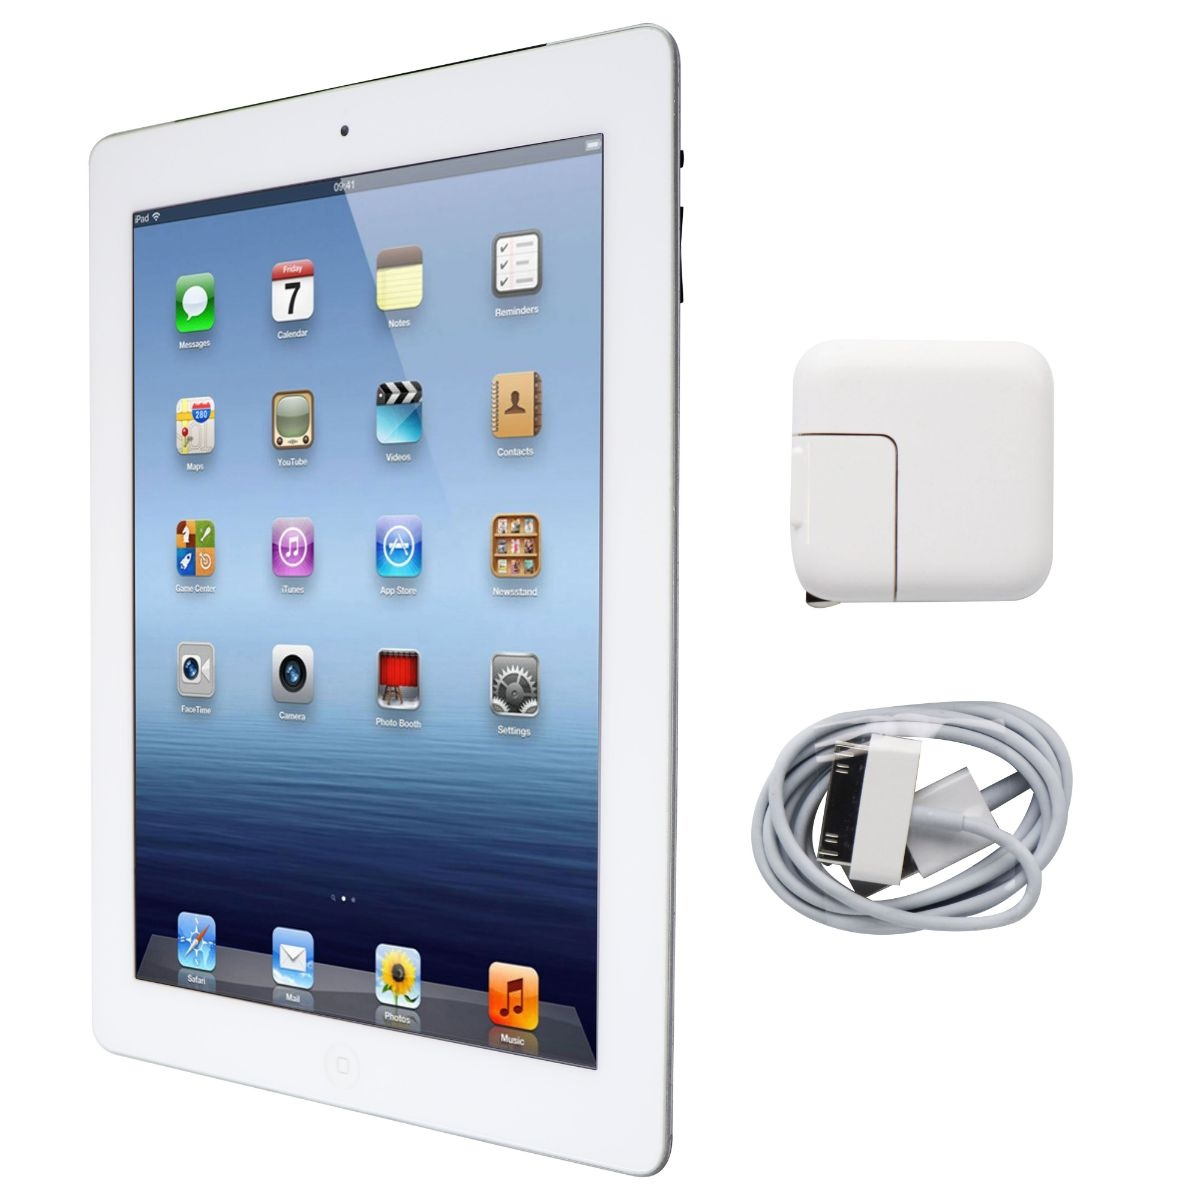 Apple iPad 9.7-inch (3rd Generation) Tablet A1430 (AT&T Locked) - 32GB / White